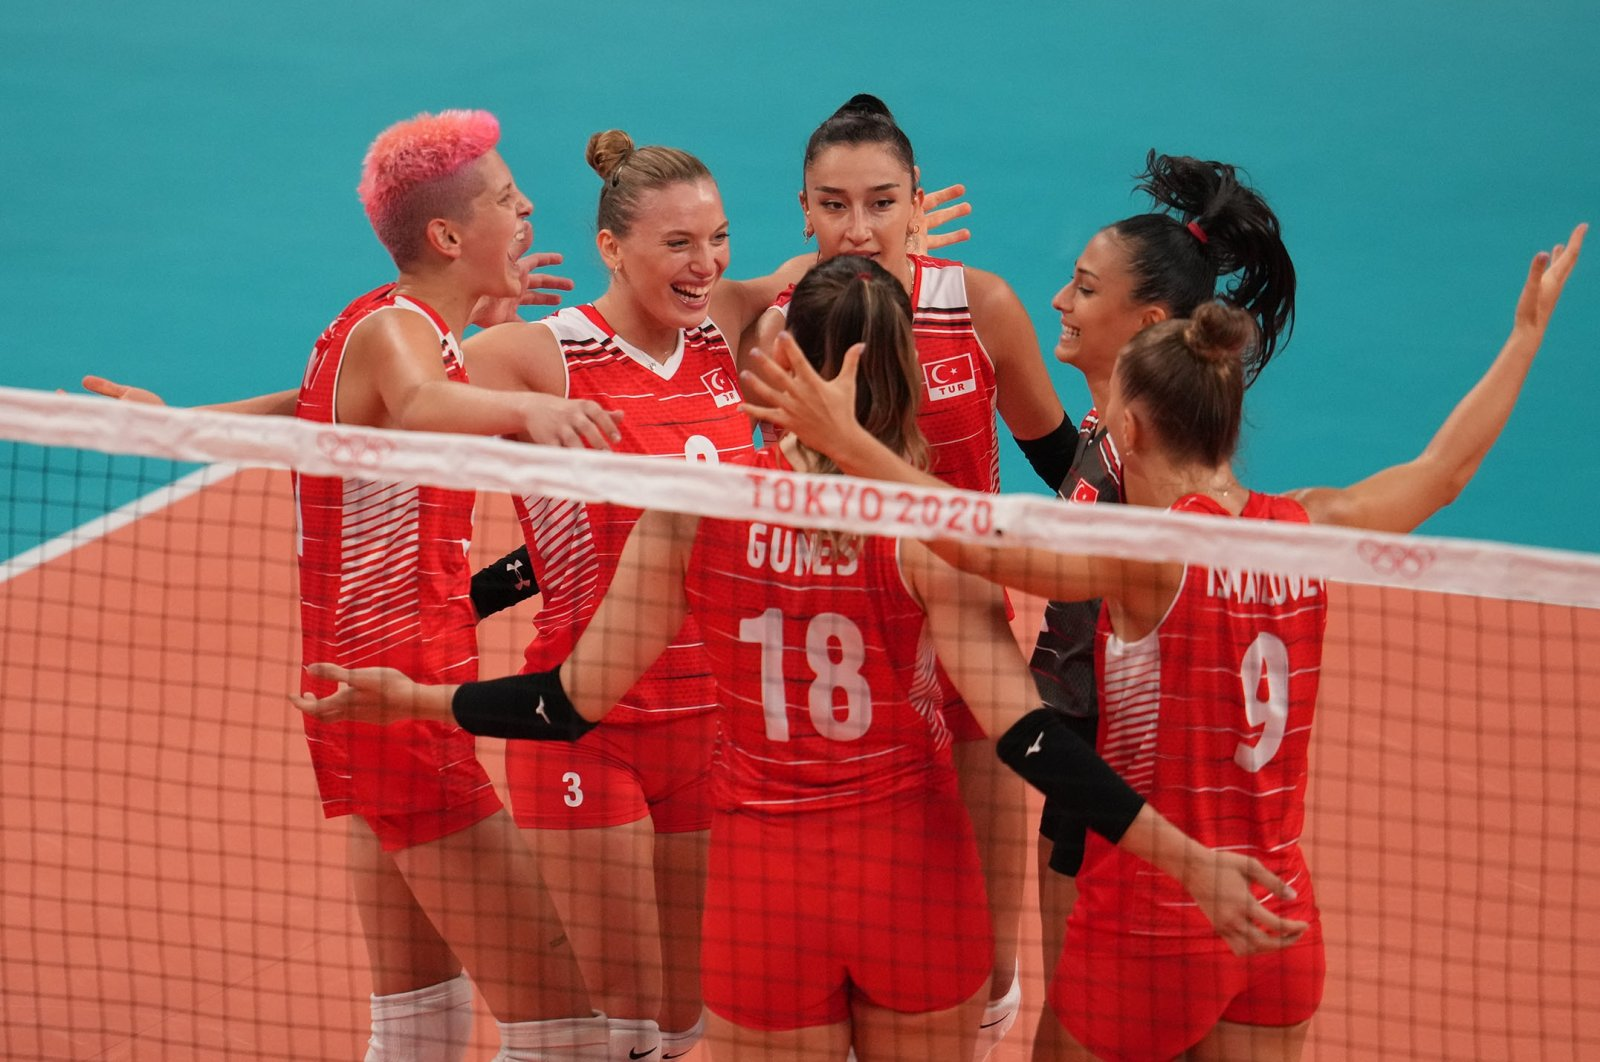 The Turkish National Women's Volleyball Team celebrates after defeating Argentina 3-0 to reach the quarterfinals at the Tokyo 2020 Olympic Games, Tokyo, Japan, July 31, 2021. (AA Photo)